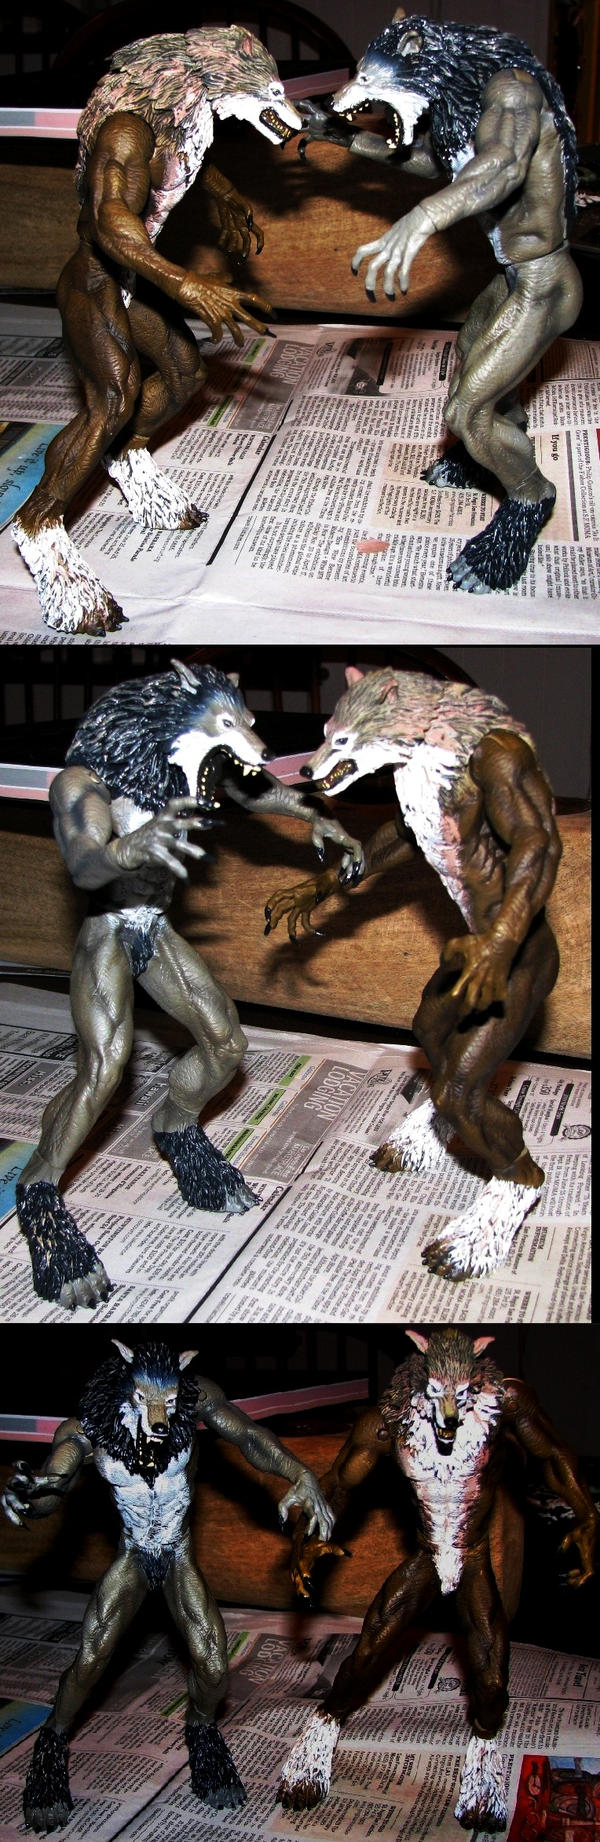 Dog Soldiers Toy Mods by Jarahamee on DeviantArt